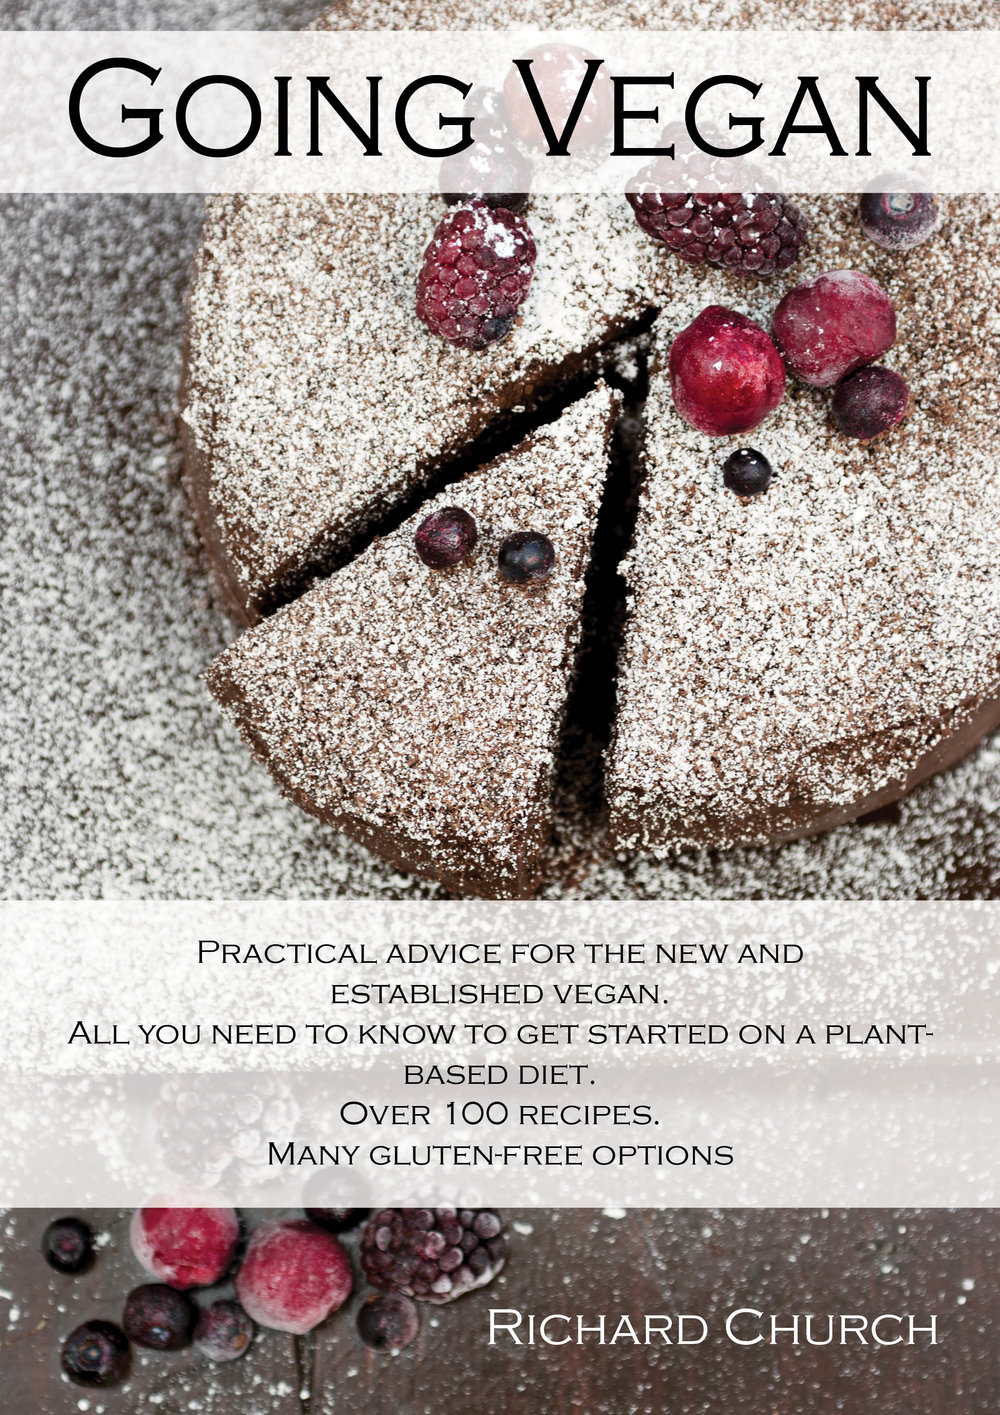 Going Vegan: The Cookbook by Richard Church - Available on Amazon Kindle for smartphones and tablets.114 plant-based dishes, many gluten-free. 256 pages of recipes and advice.It's the cookbook no vegan should be without.Very Soon Available in Paperback!!